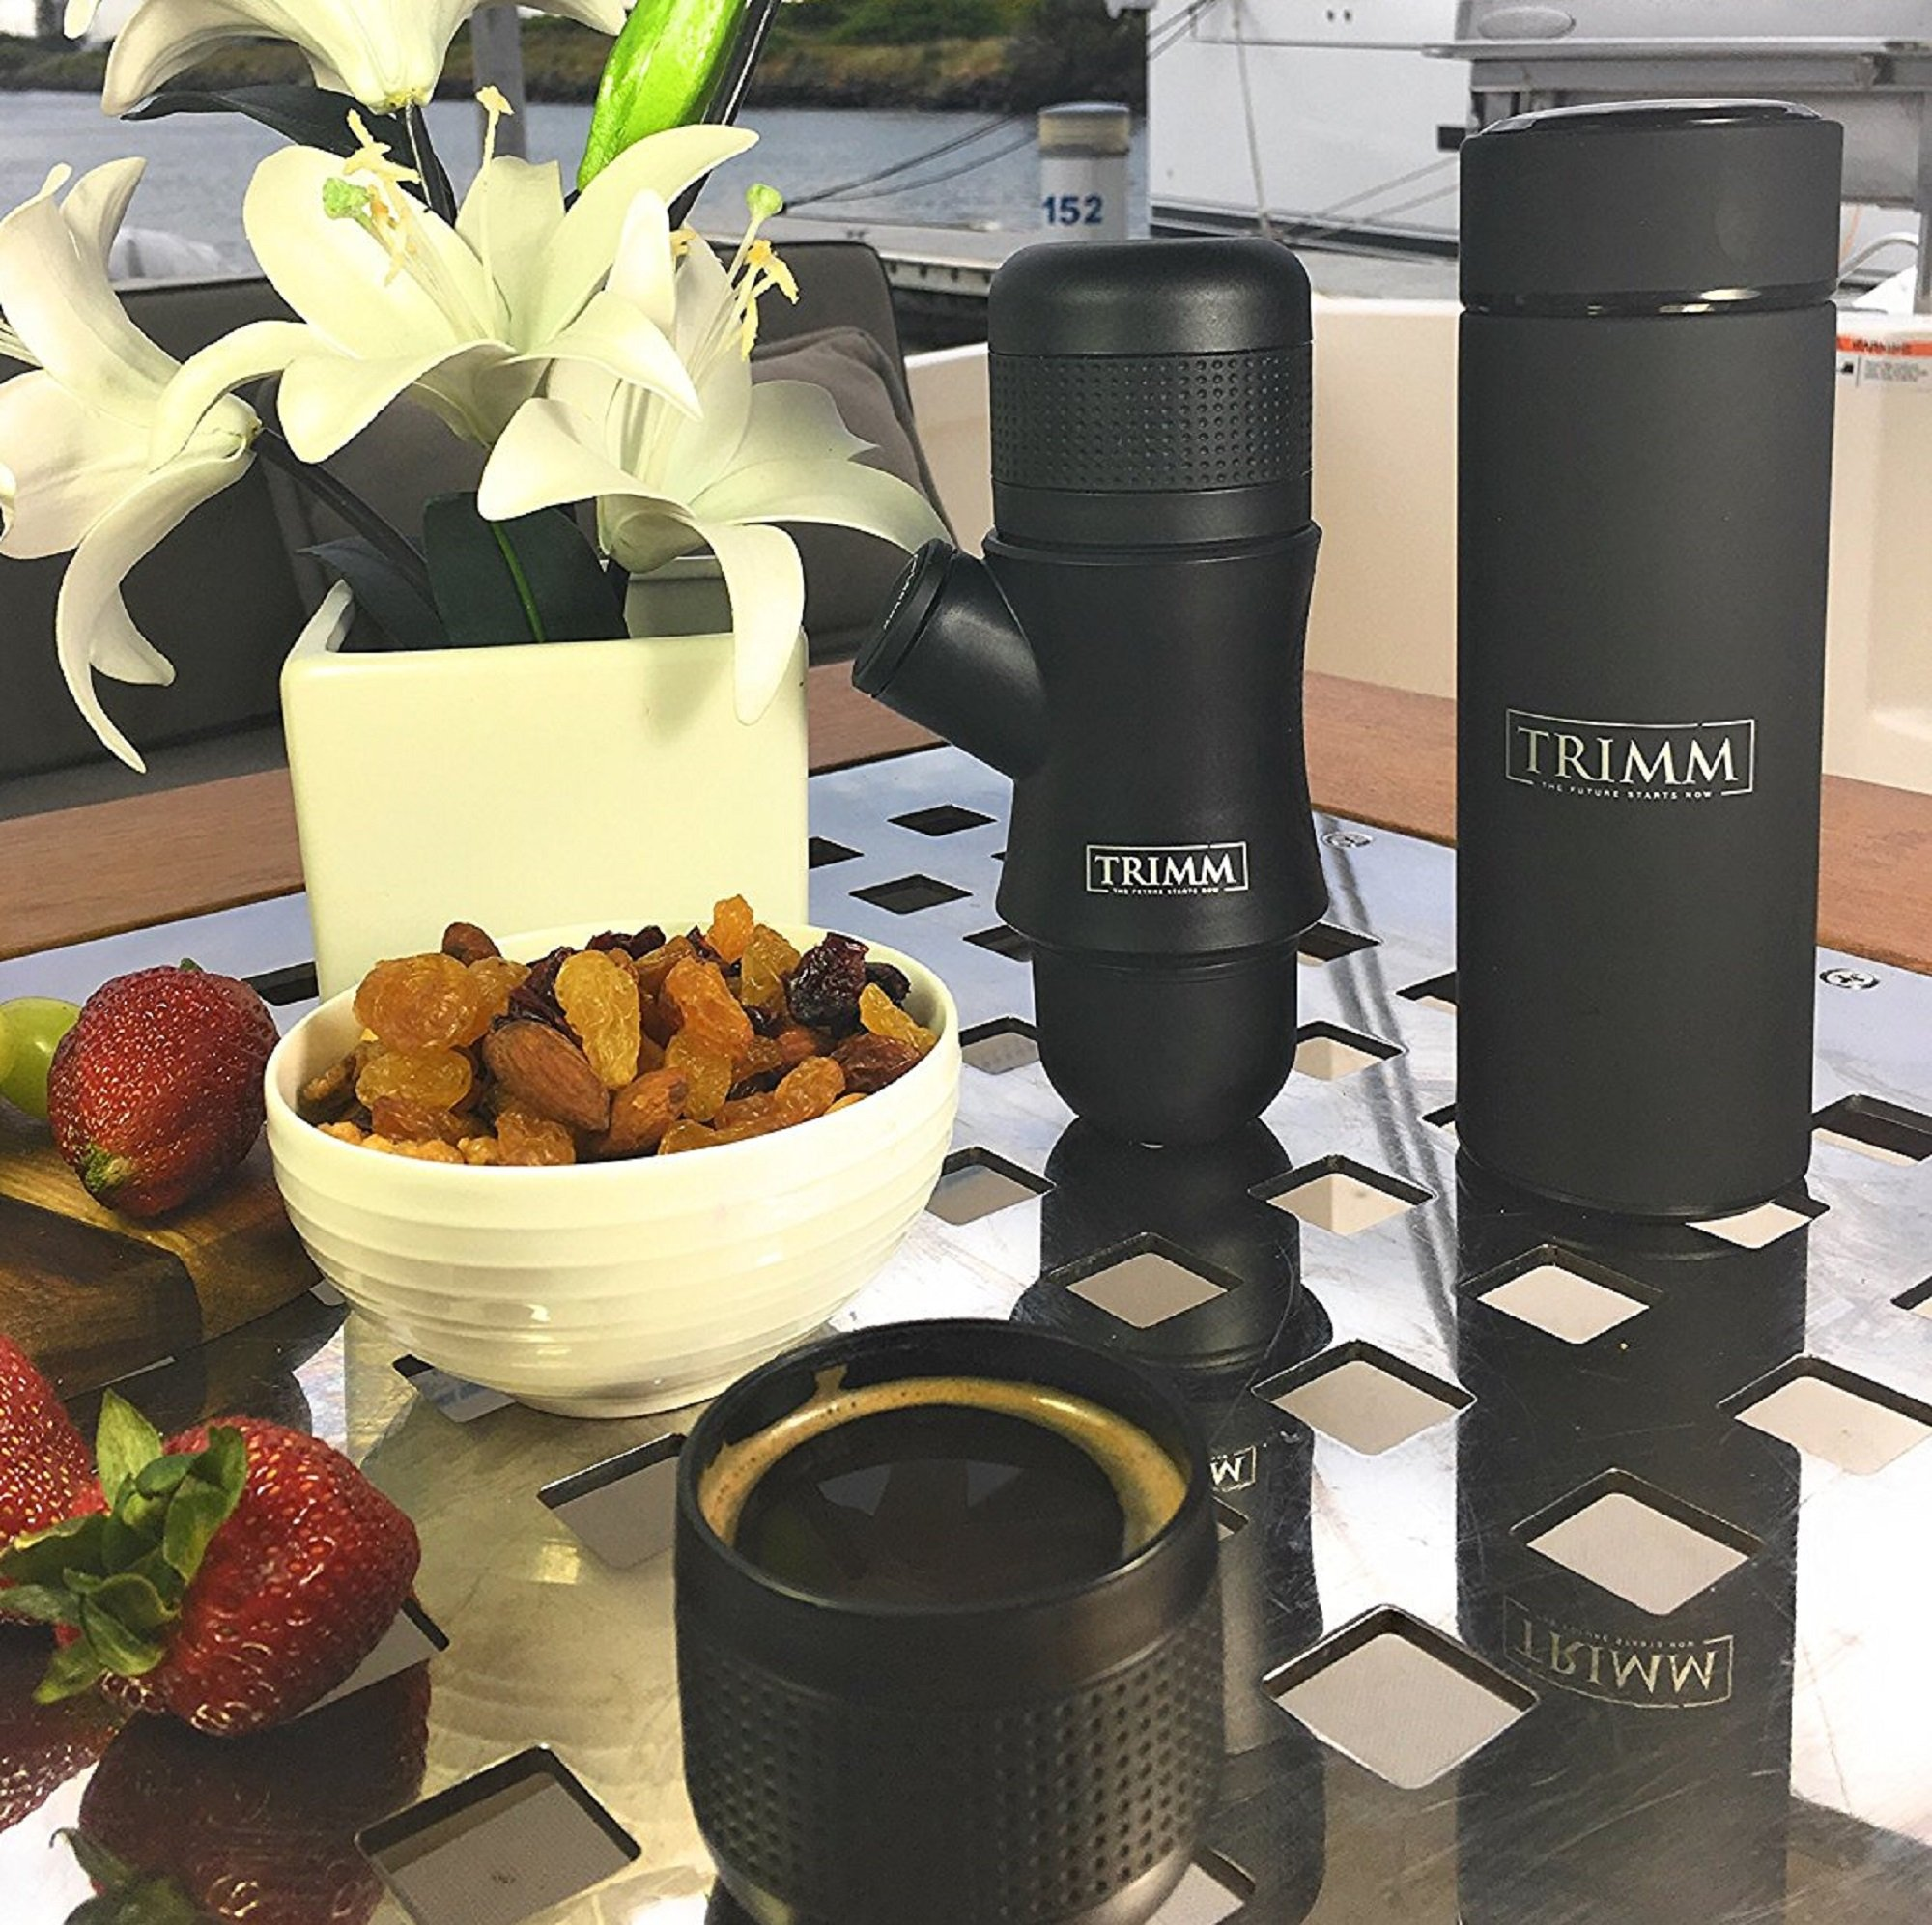 Trimm Portable Hand Held Espresso Machine and Thermos Vacuum Insulated Double Wall | Portable Espresso Maker and Flask | Single Cup Coffee Maker and Tea Thermos Bottle | Travel Set Great Gift Idea by TRIMM THE FUTURE STARTS NOW (Image #7)